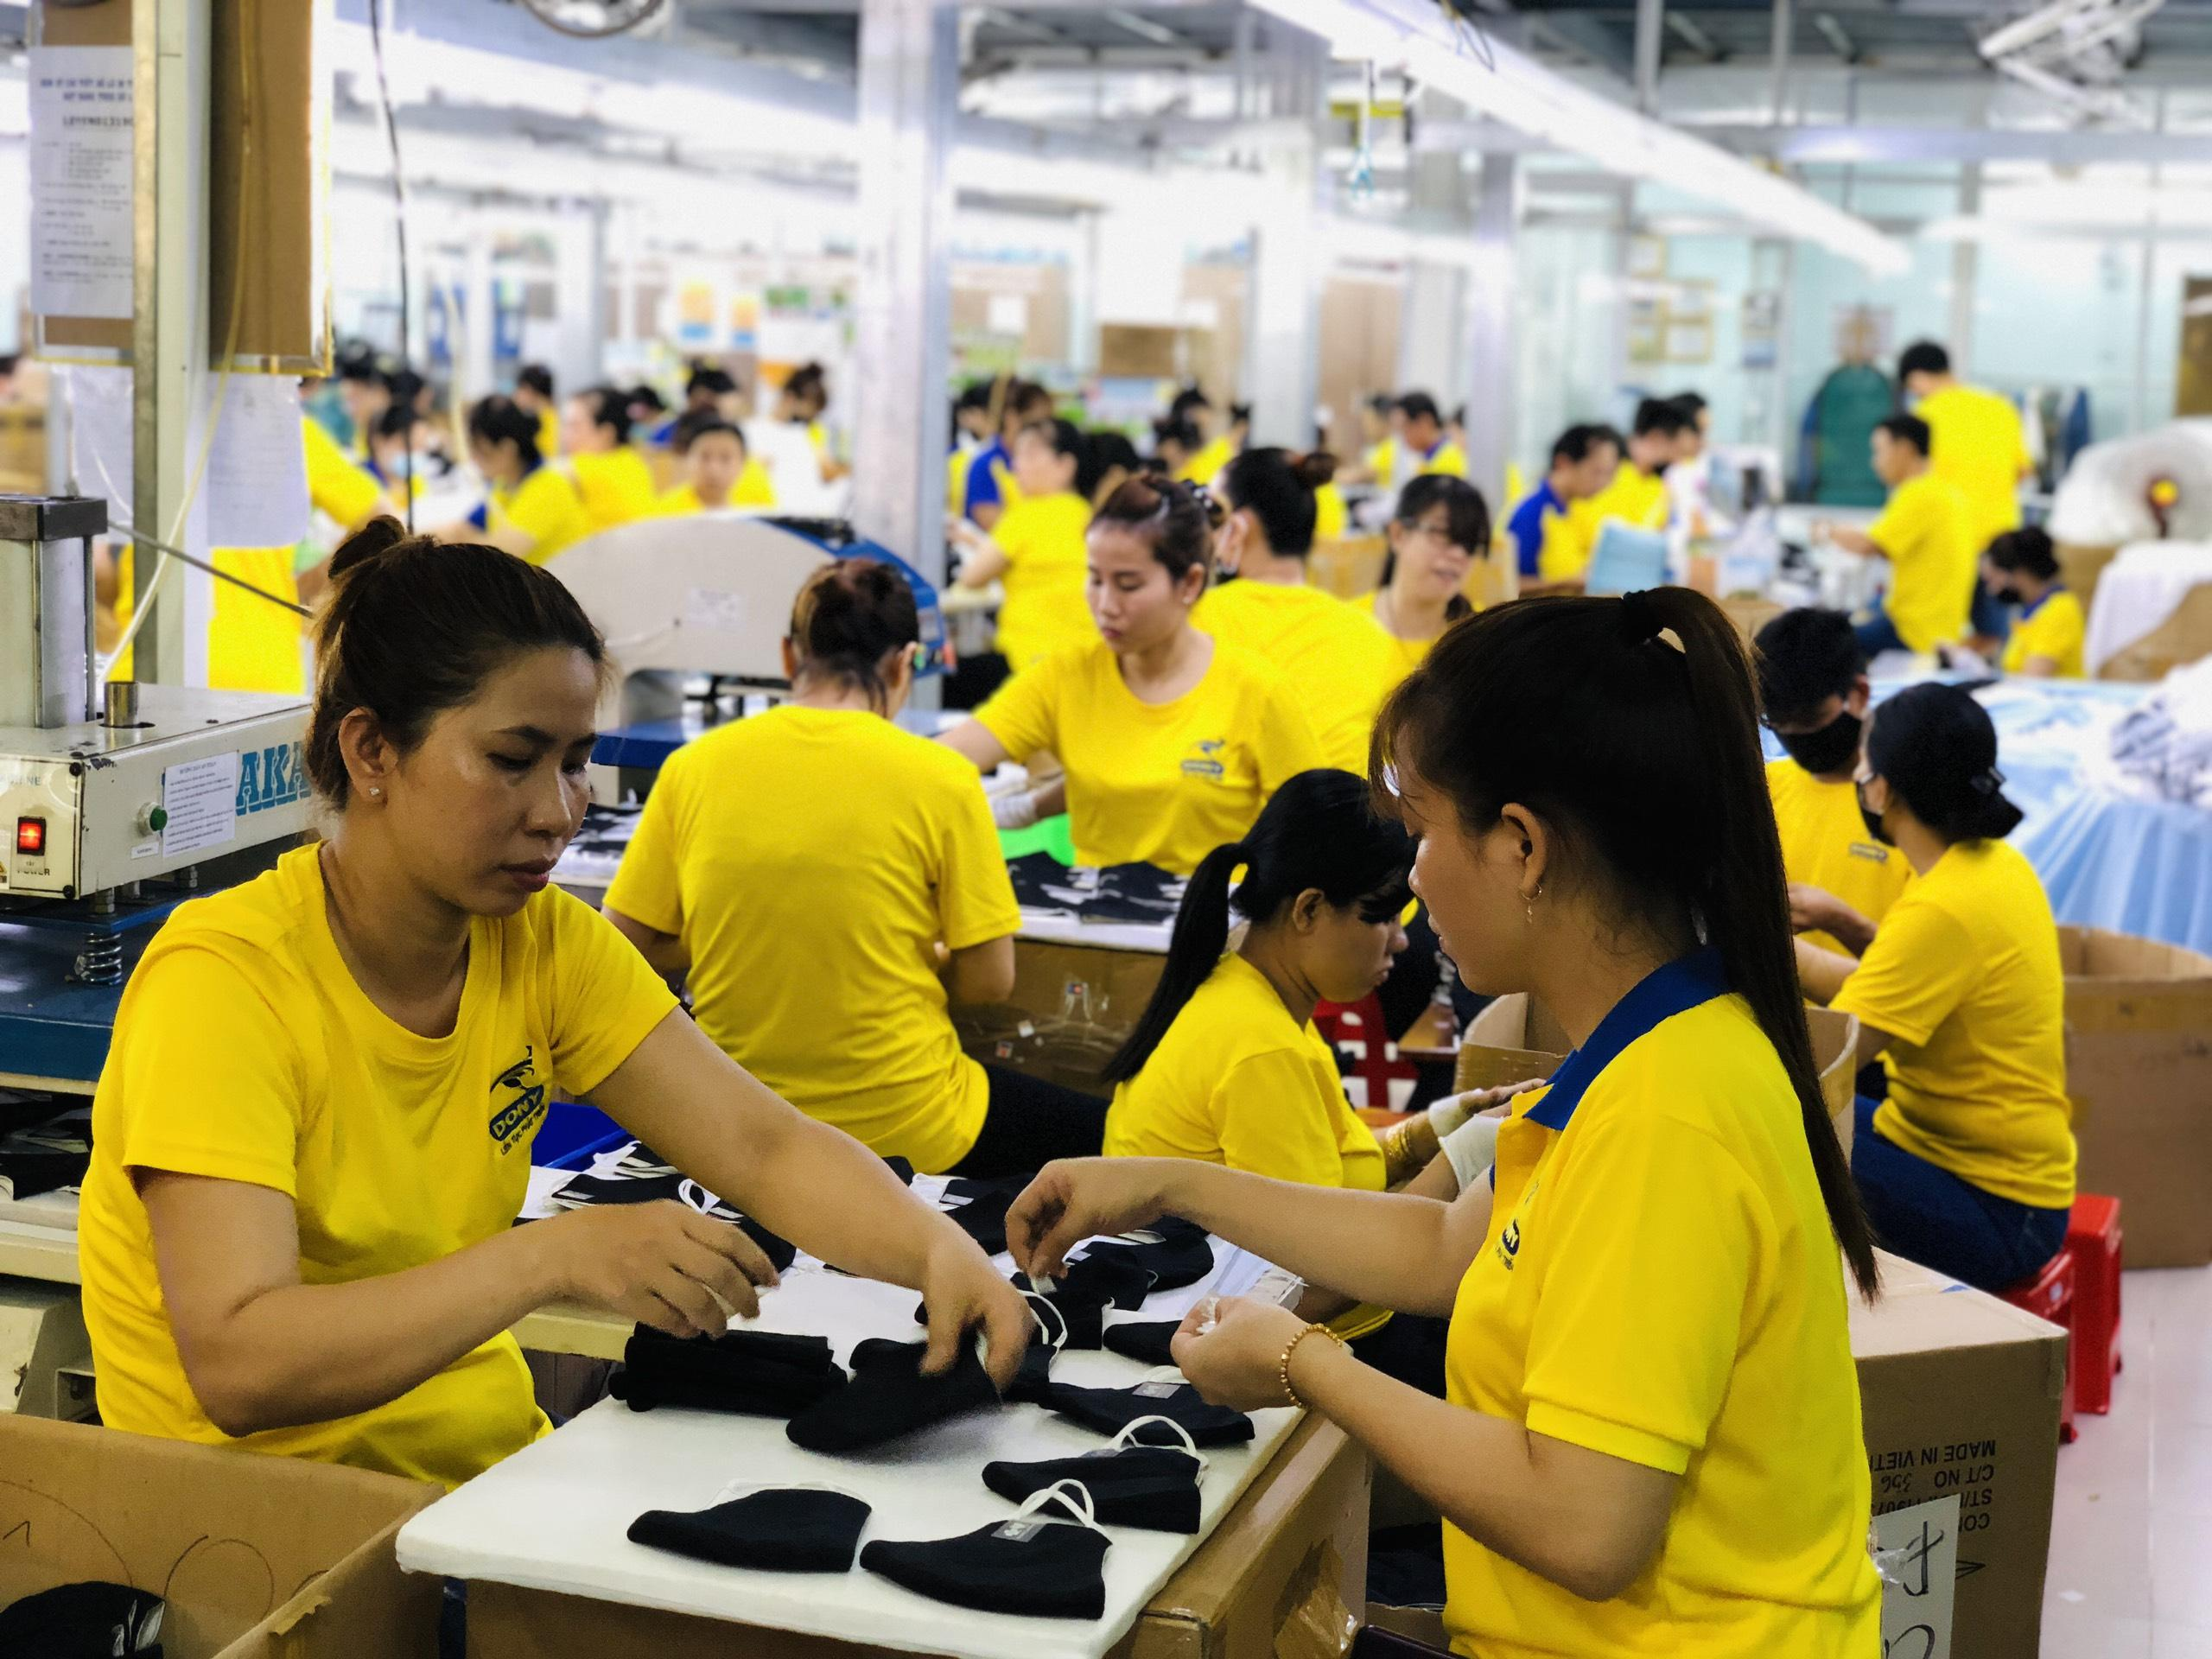 Top Clothing & Apparel Manufacturers in Vietnam - Garment Factory For B2B - IssueWire